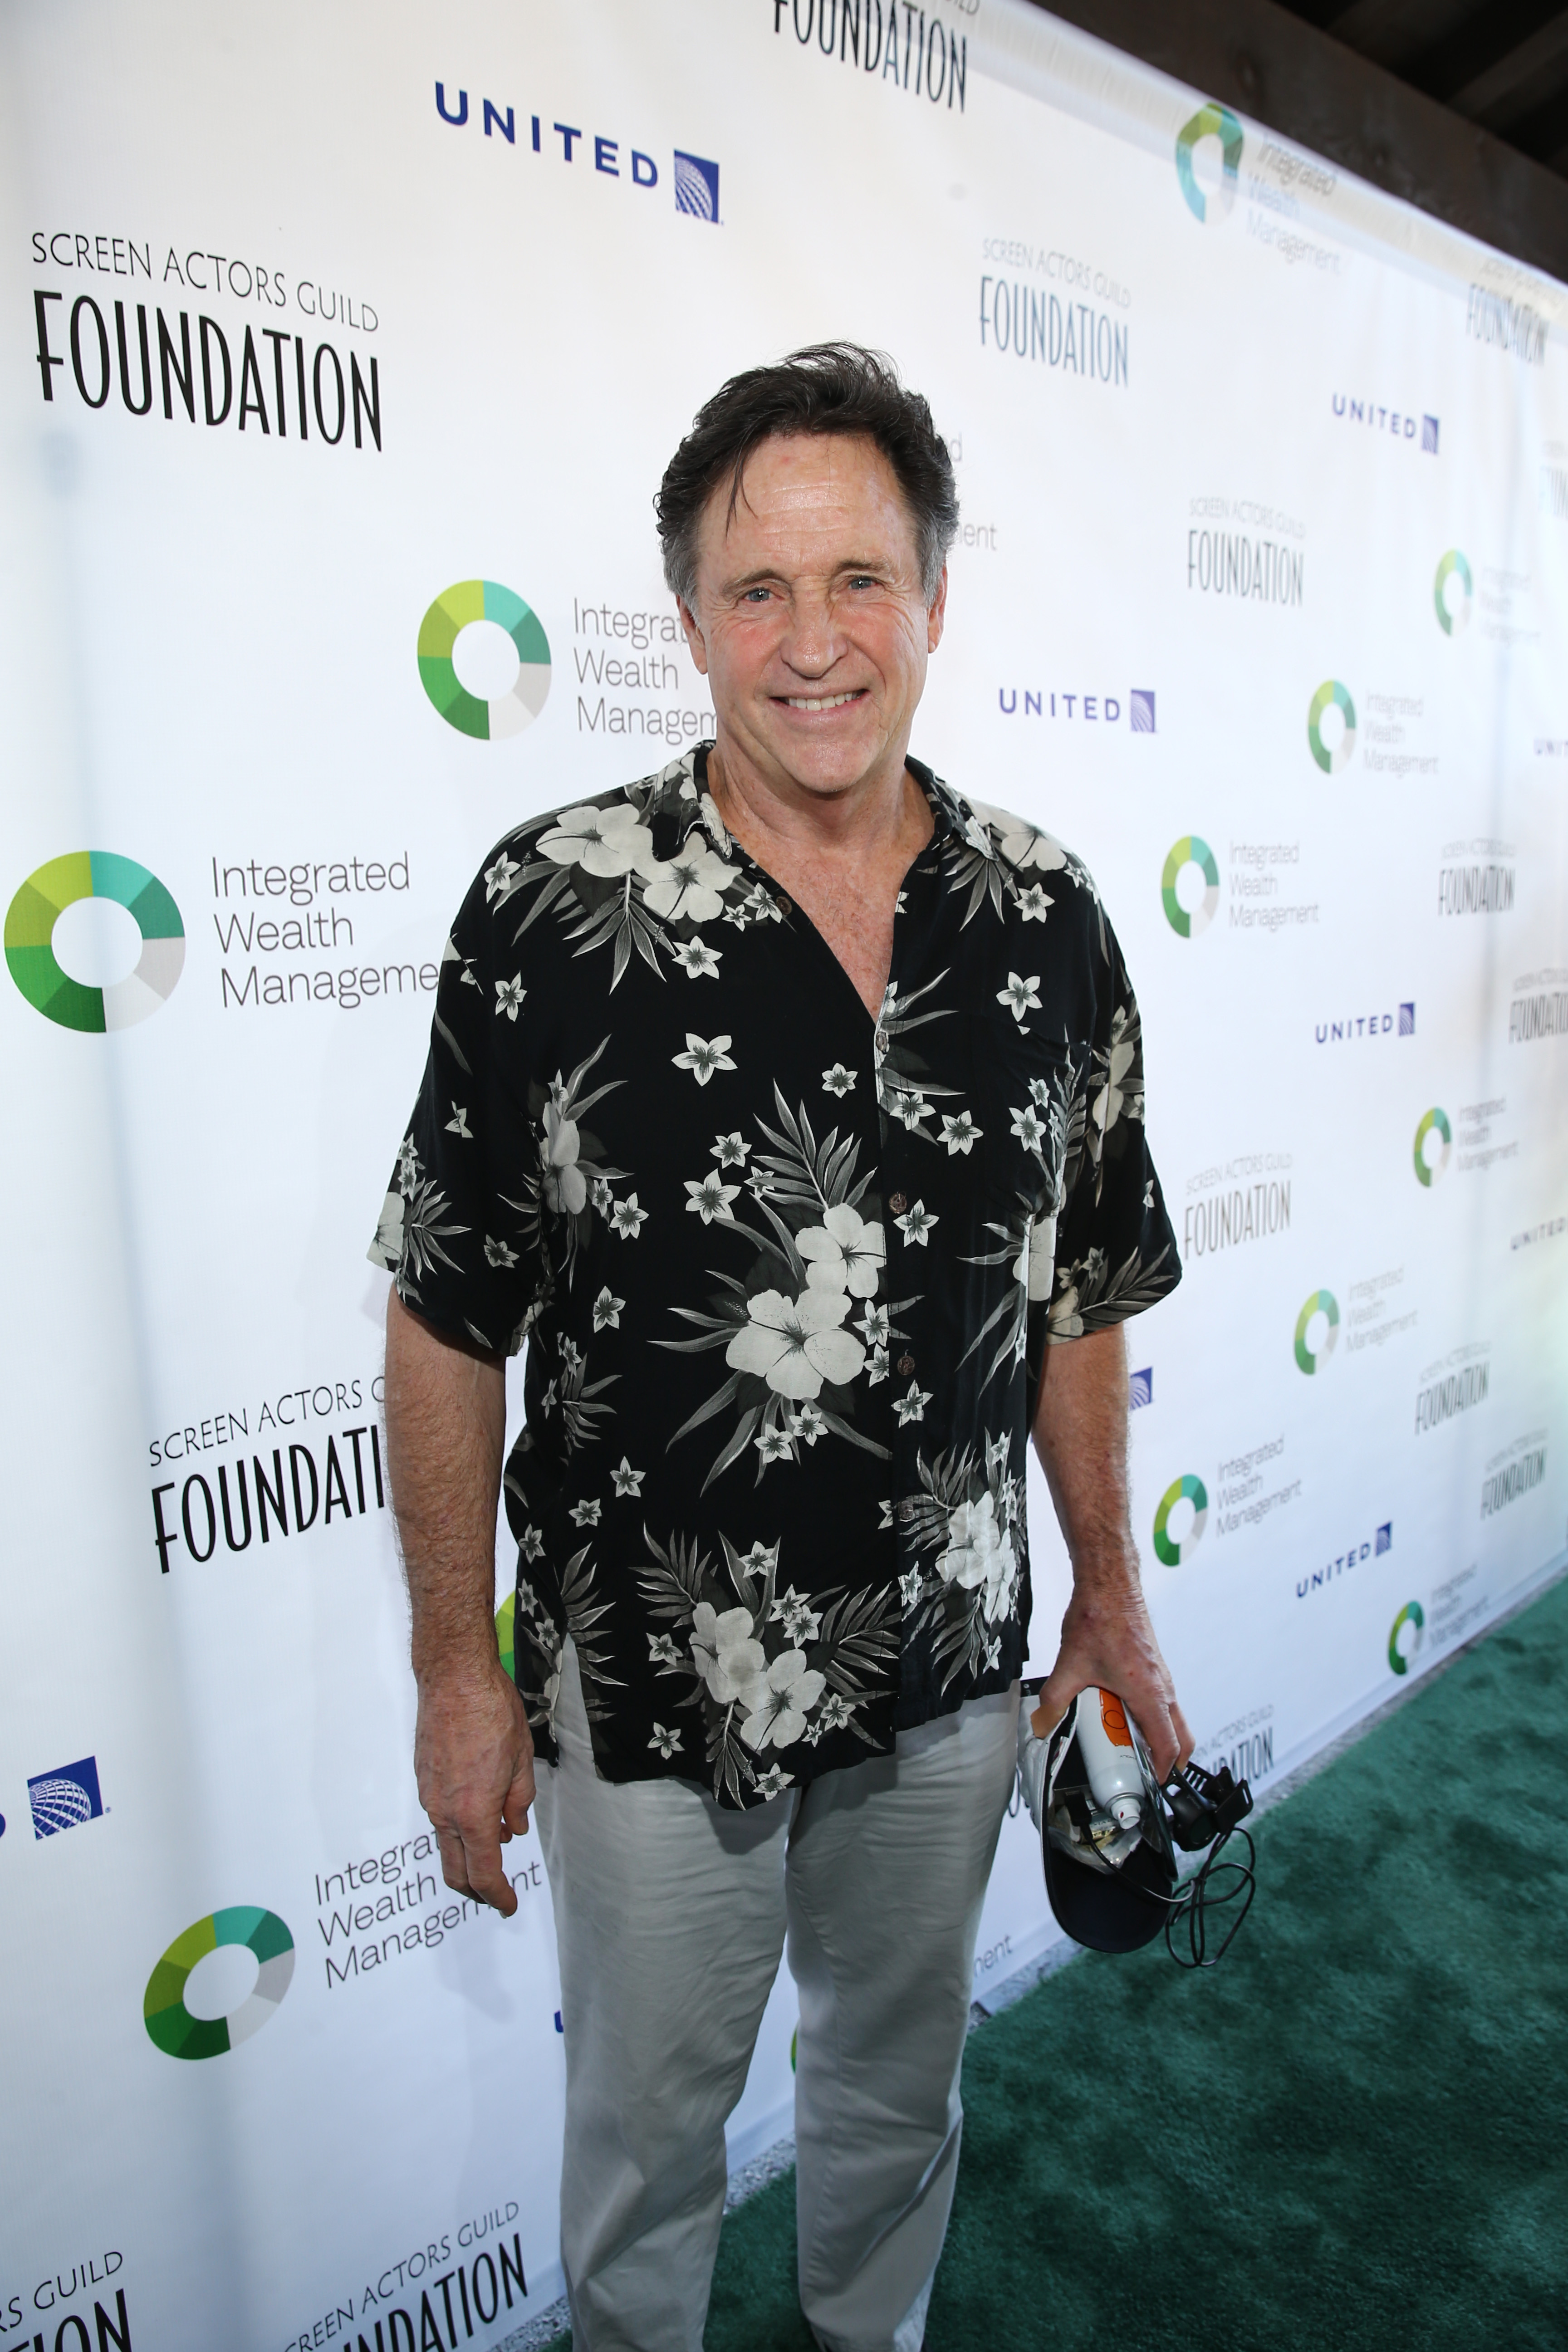 Actor Robert Hays attends The Screen Actors Guild Foundation's 6th Annual Los Angeles Golf Classic on June 8, 2015 in Burbank, California.  (Photo by Jason Kempin/Getty Images for The Screen Actors Guild Foundation)